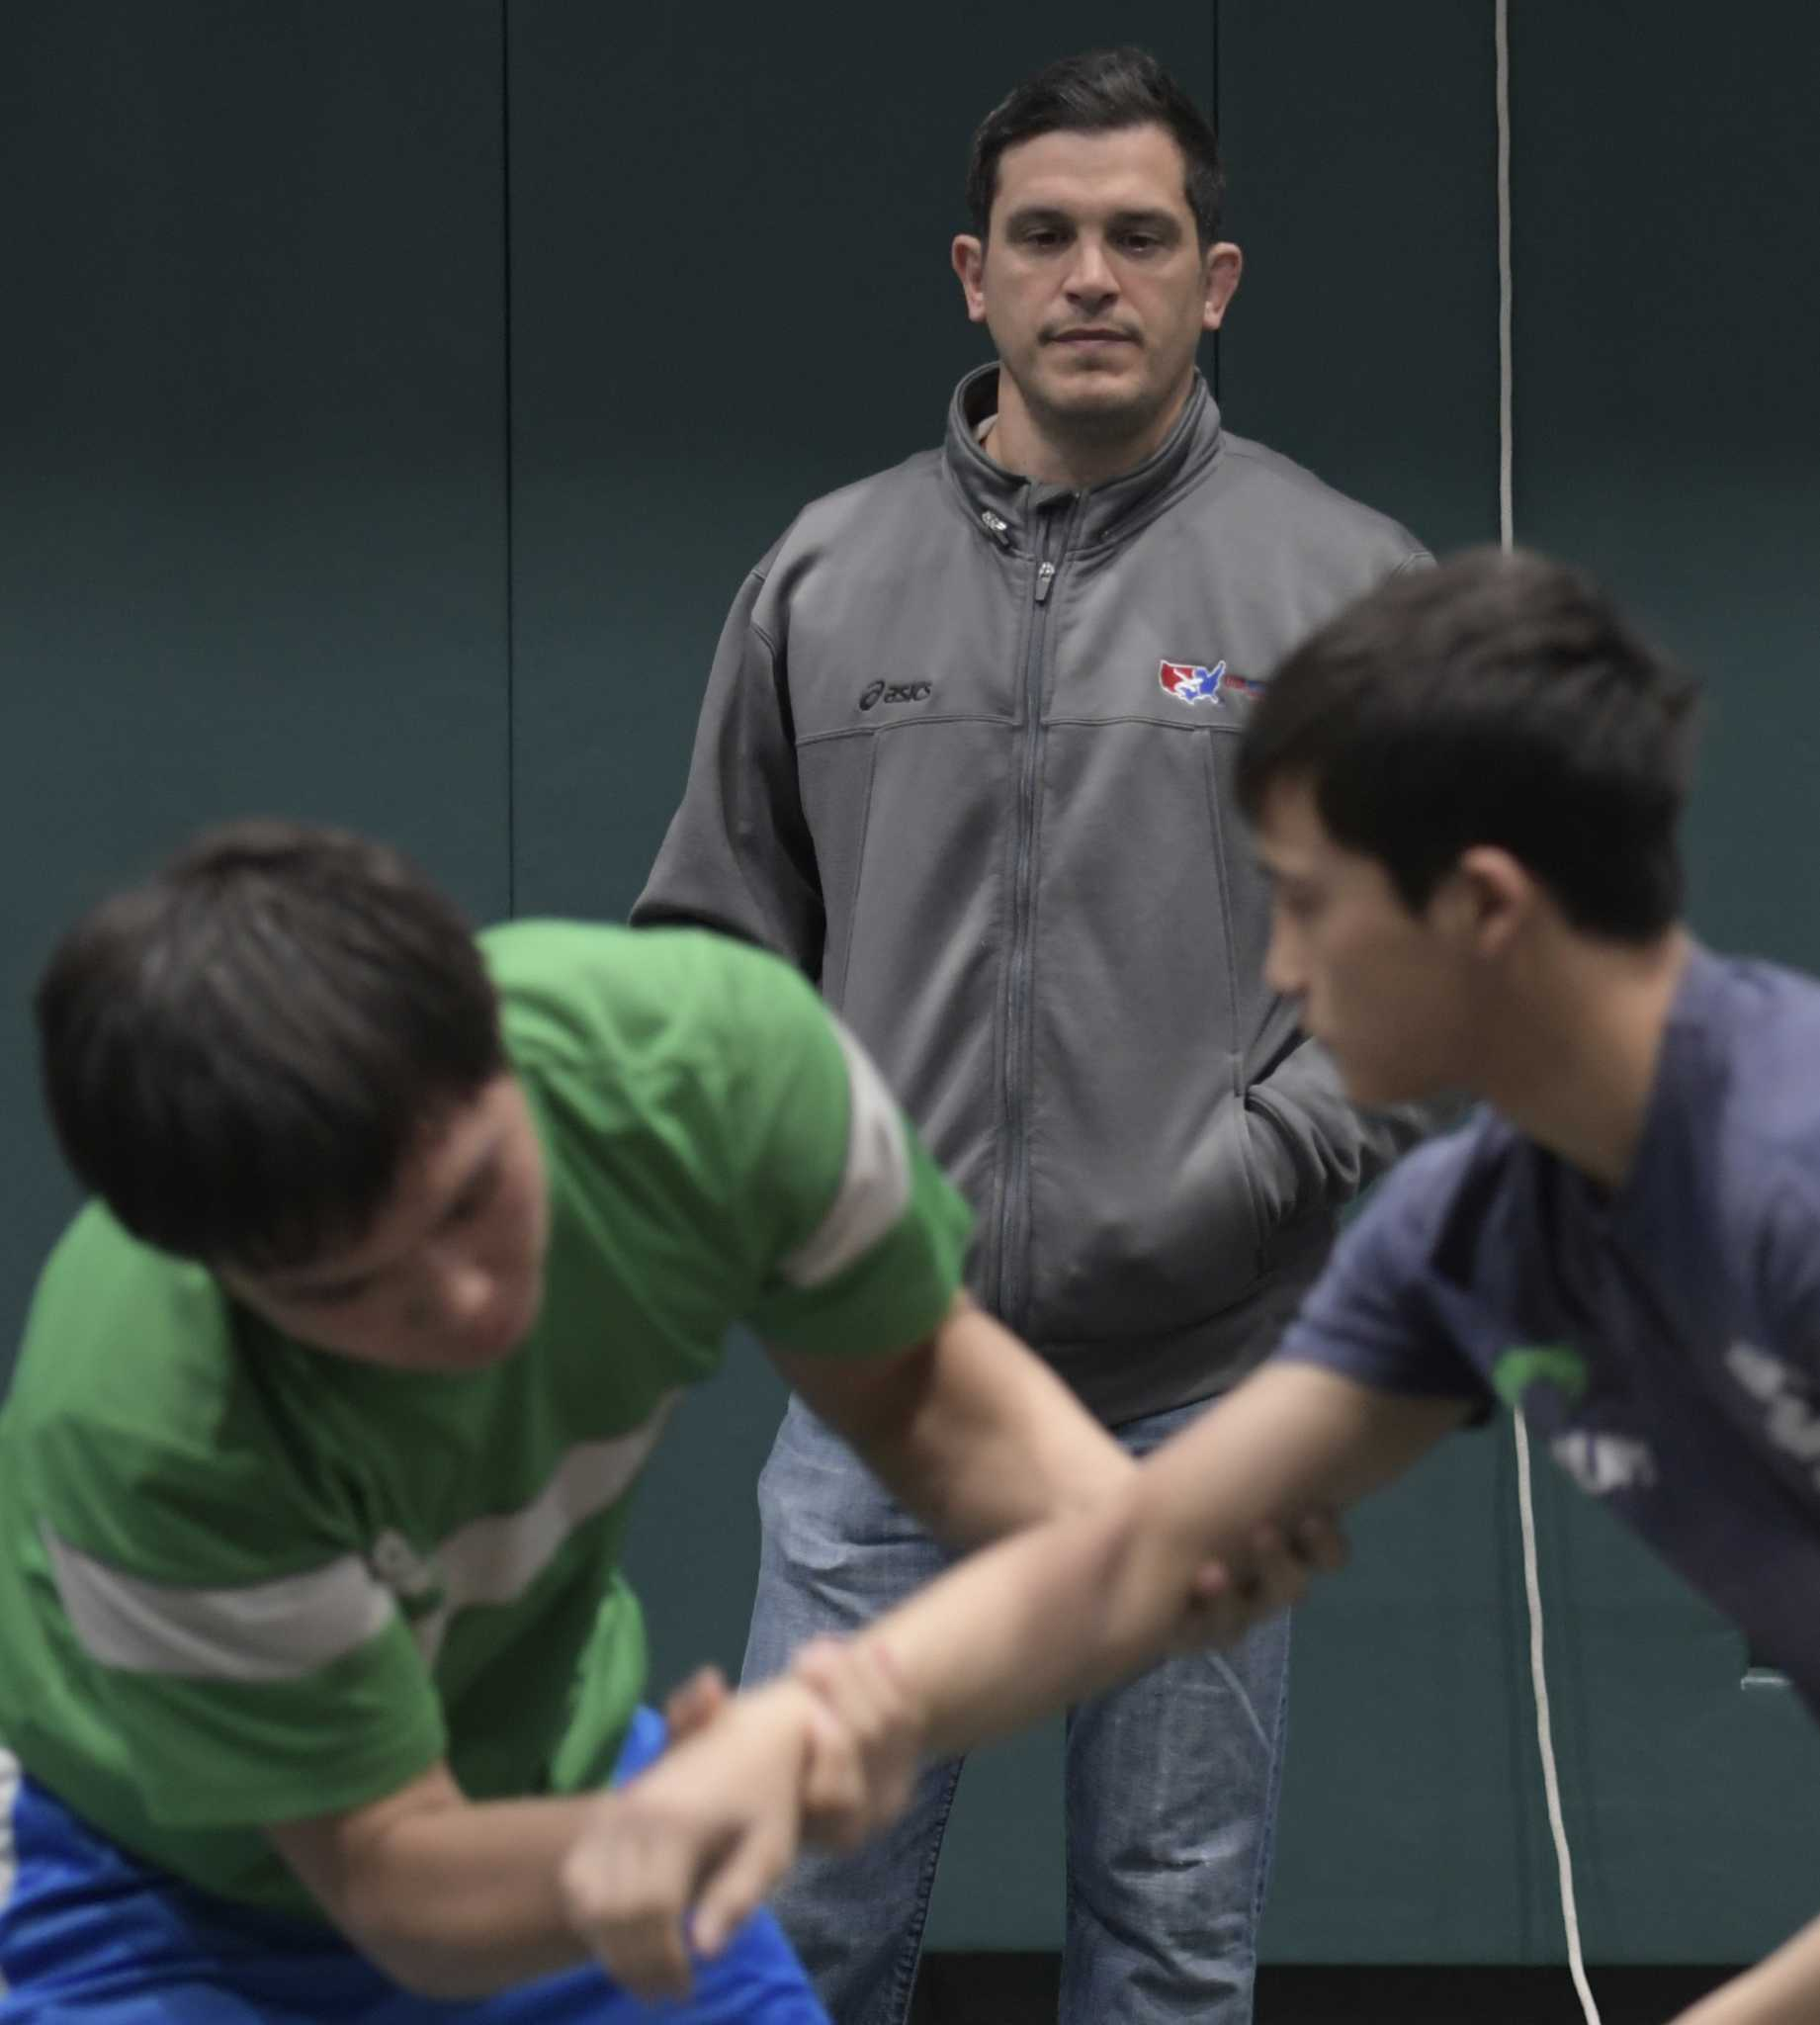 Auto Store Of Greenville >> Journeymen Classic wrestling returns to Shen, HVCC - Times ...